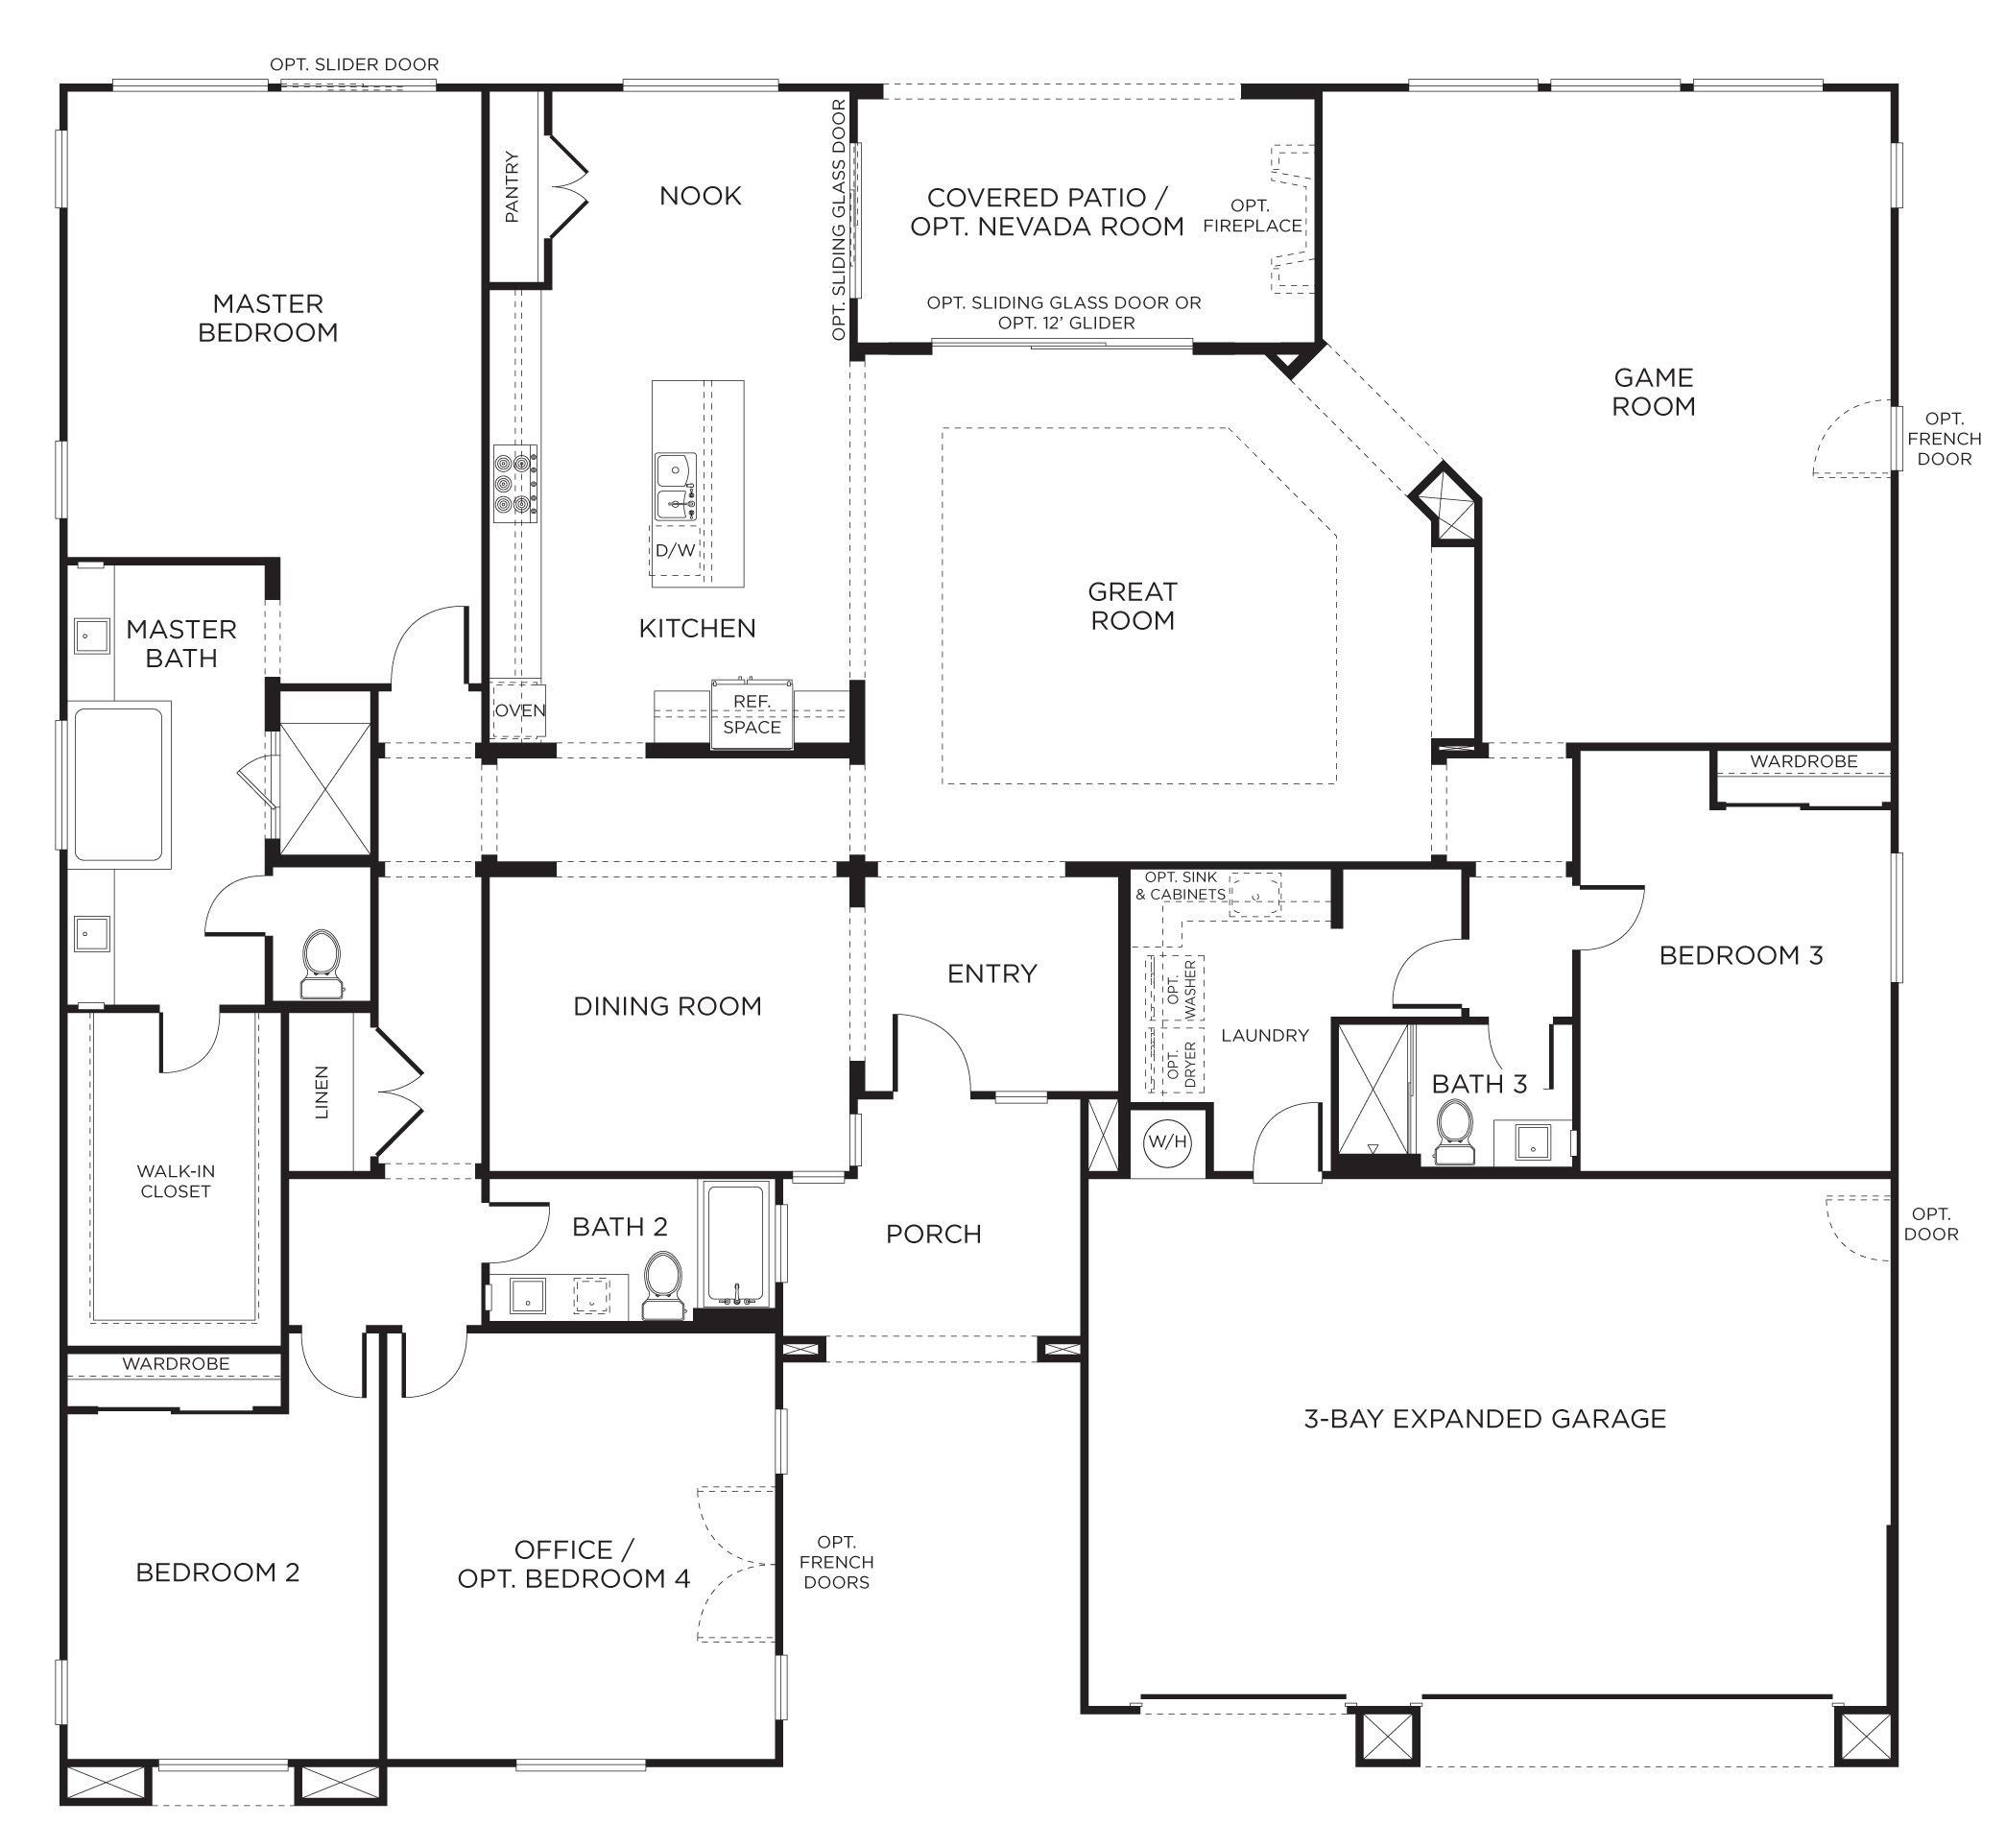 House Plans For One Story Homes Floorplan 2 34 Bedrooms 3 Bathrooms 3400 Square Feet  Dream